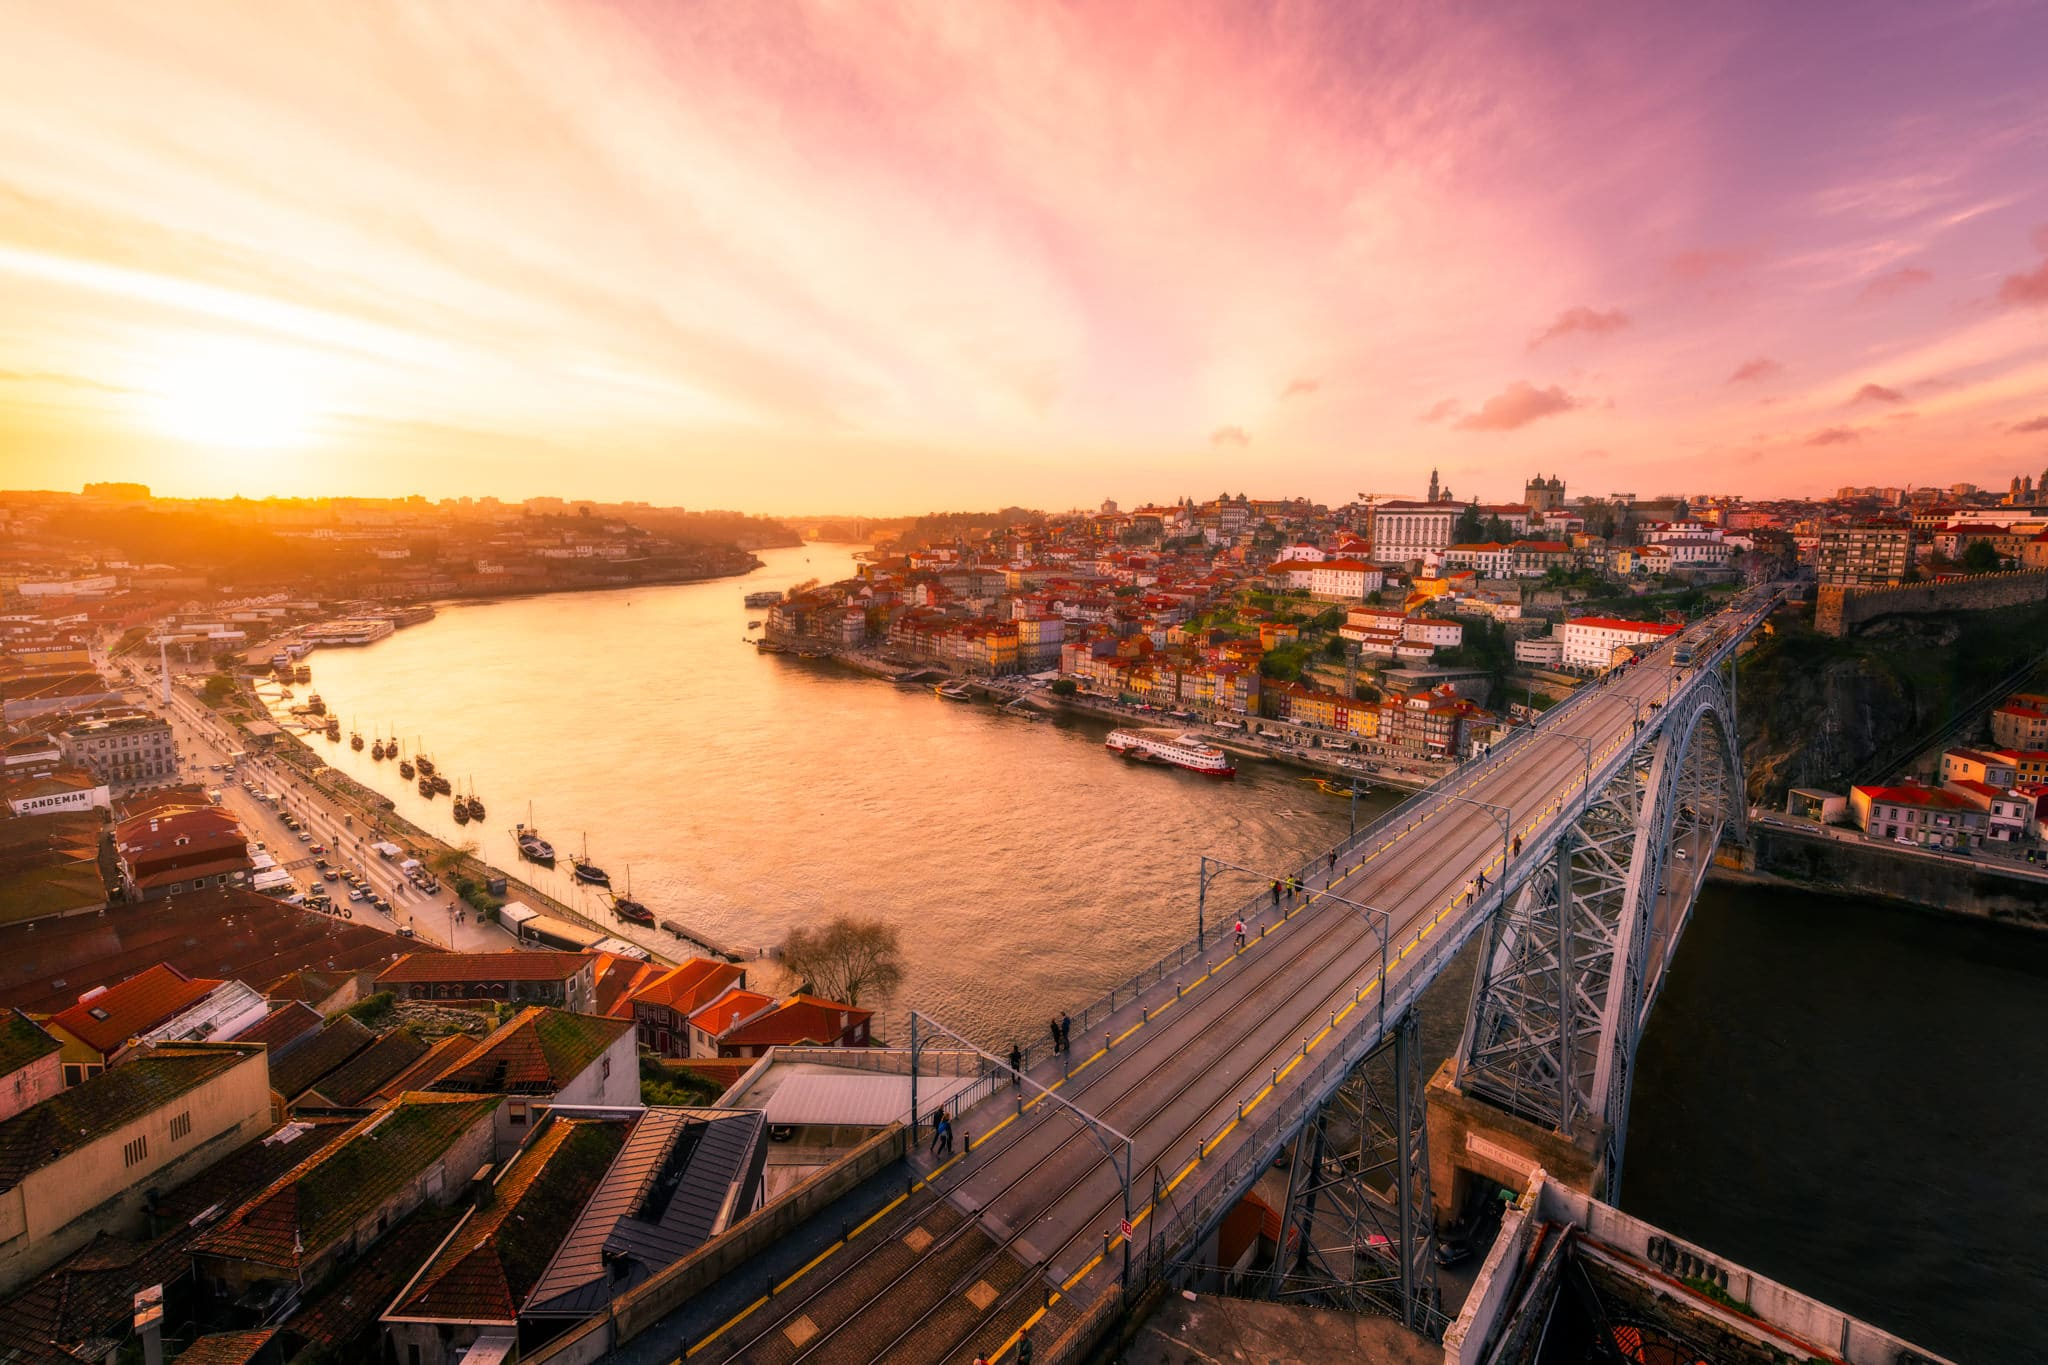 Sunset in Porto with D. Luis Bridge and city skyline, Portugal.